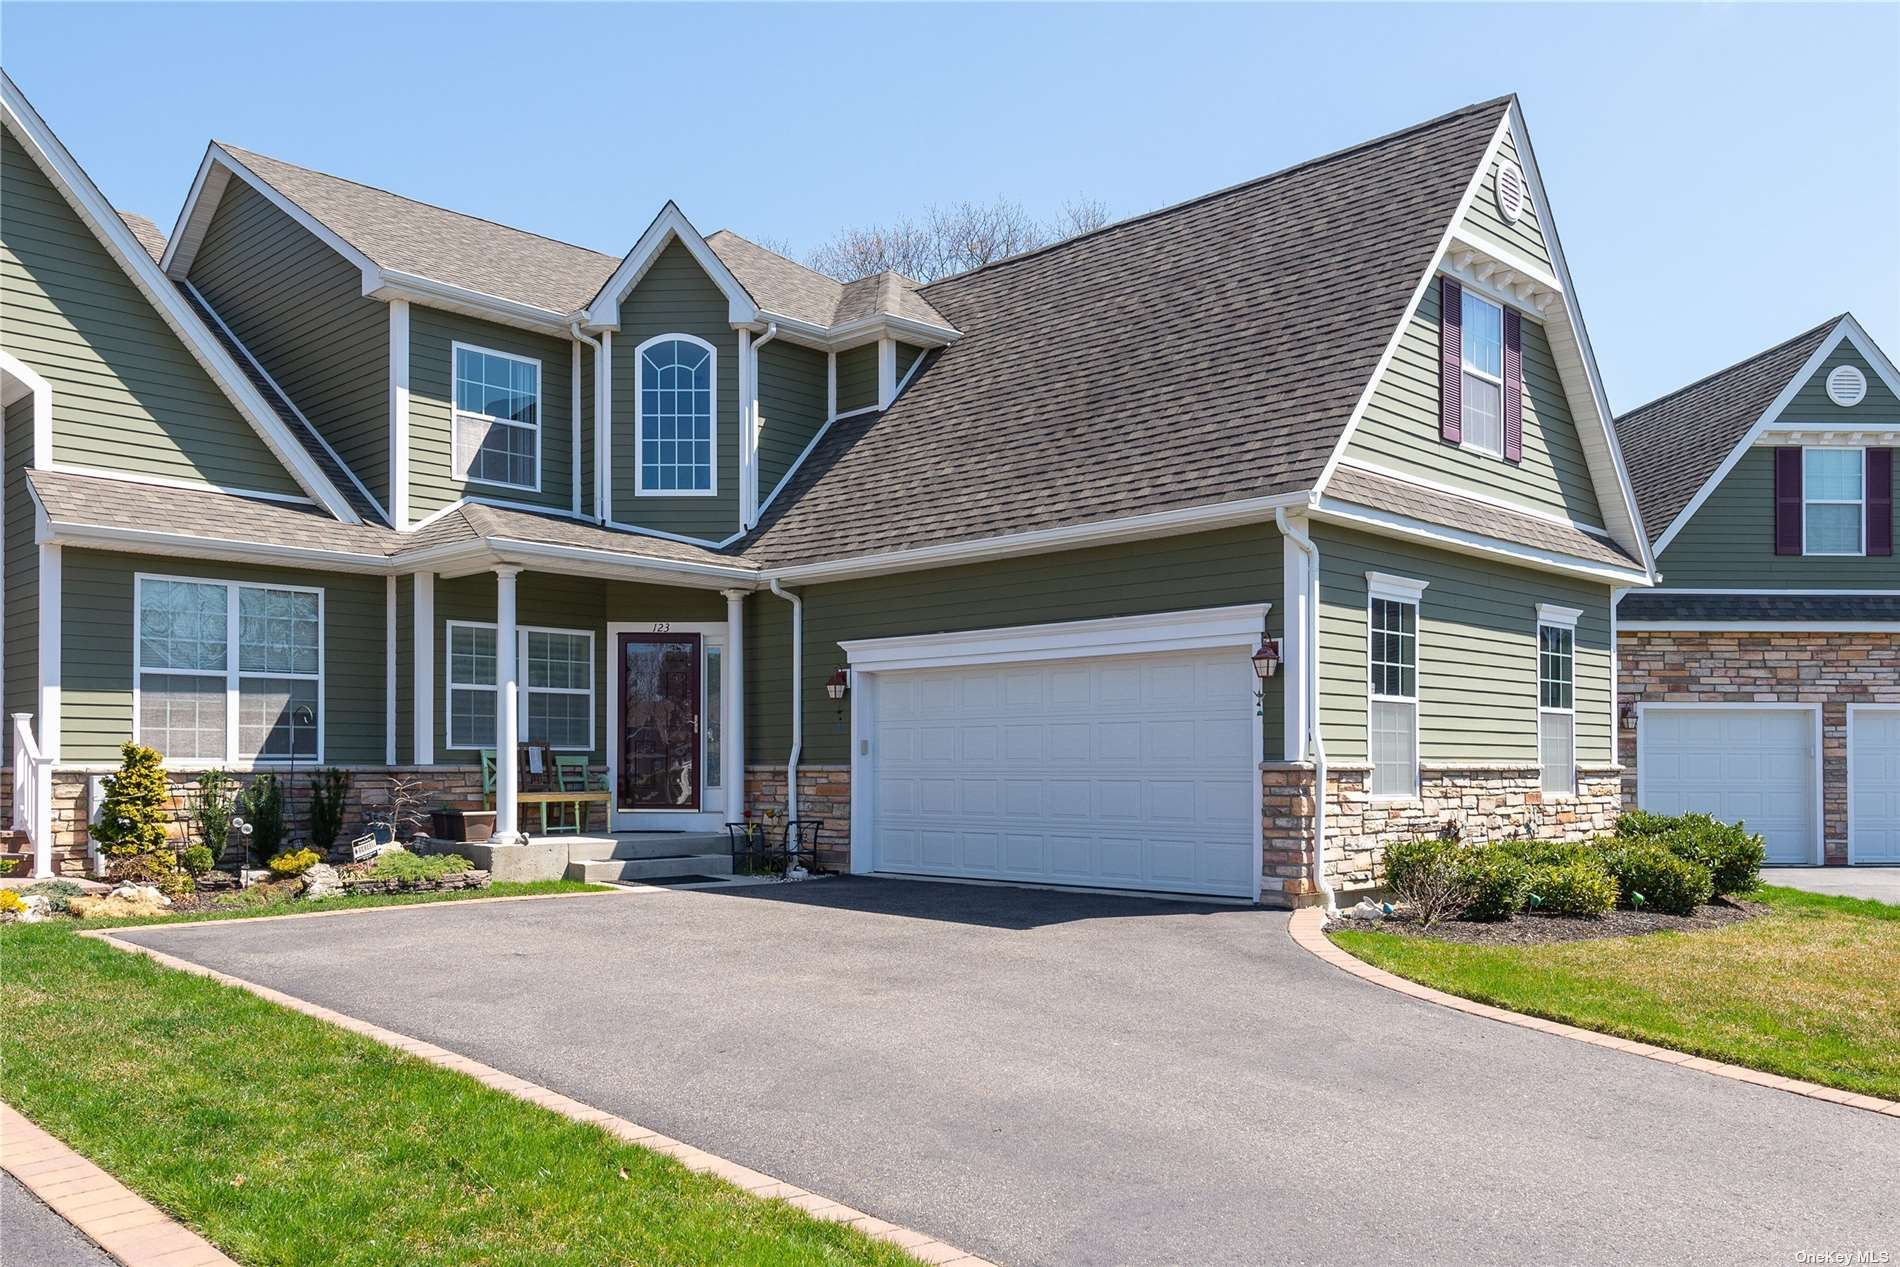 123 Victoria Place, Melville, NY 11747 - MLS#: 3302043